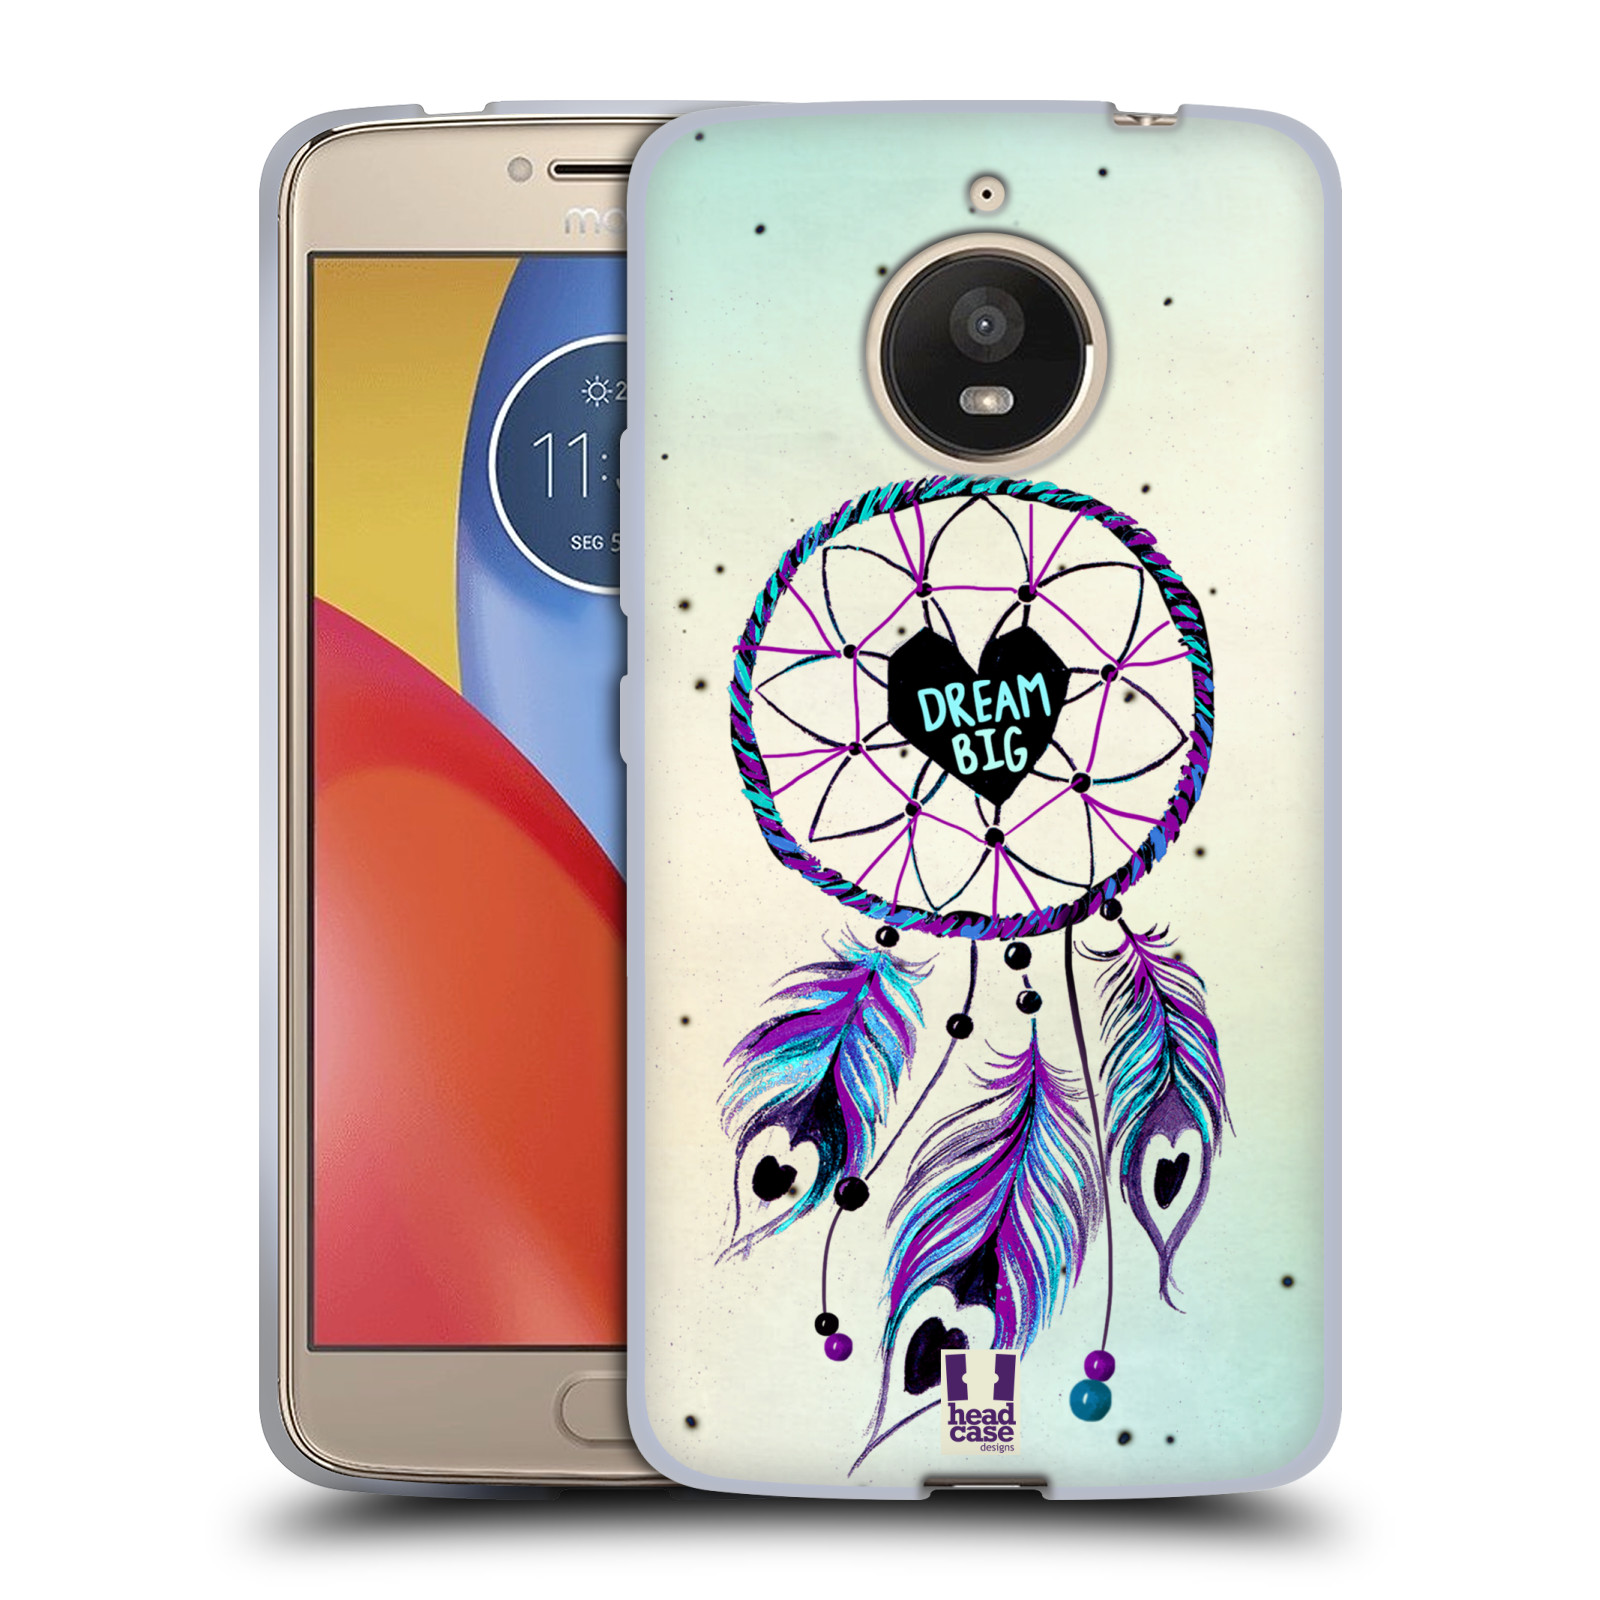 Silikonové pouzdro na mobil Lenovo Moto E4 Plus - Head Case - Lapač  Assorted Dream Big empty adeb5b4ca69